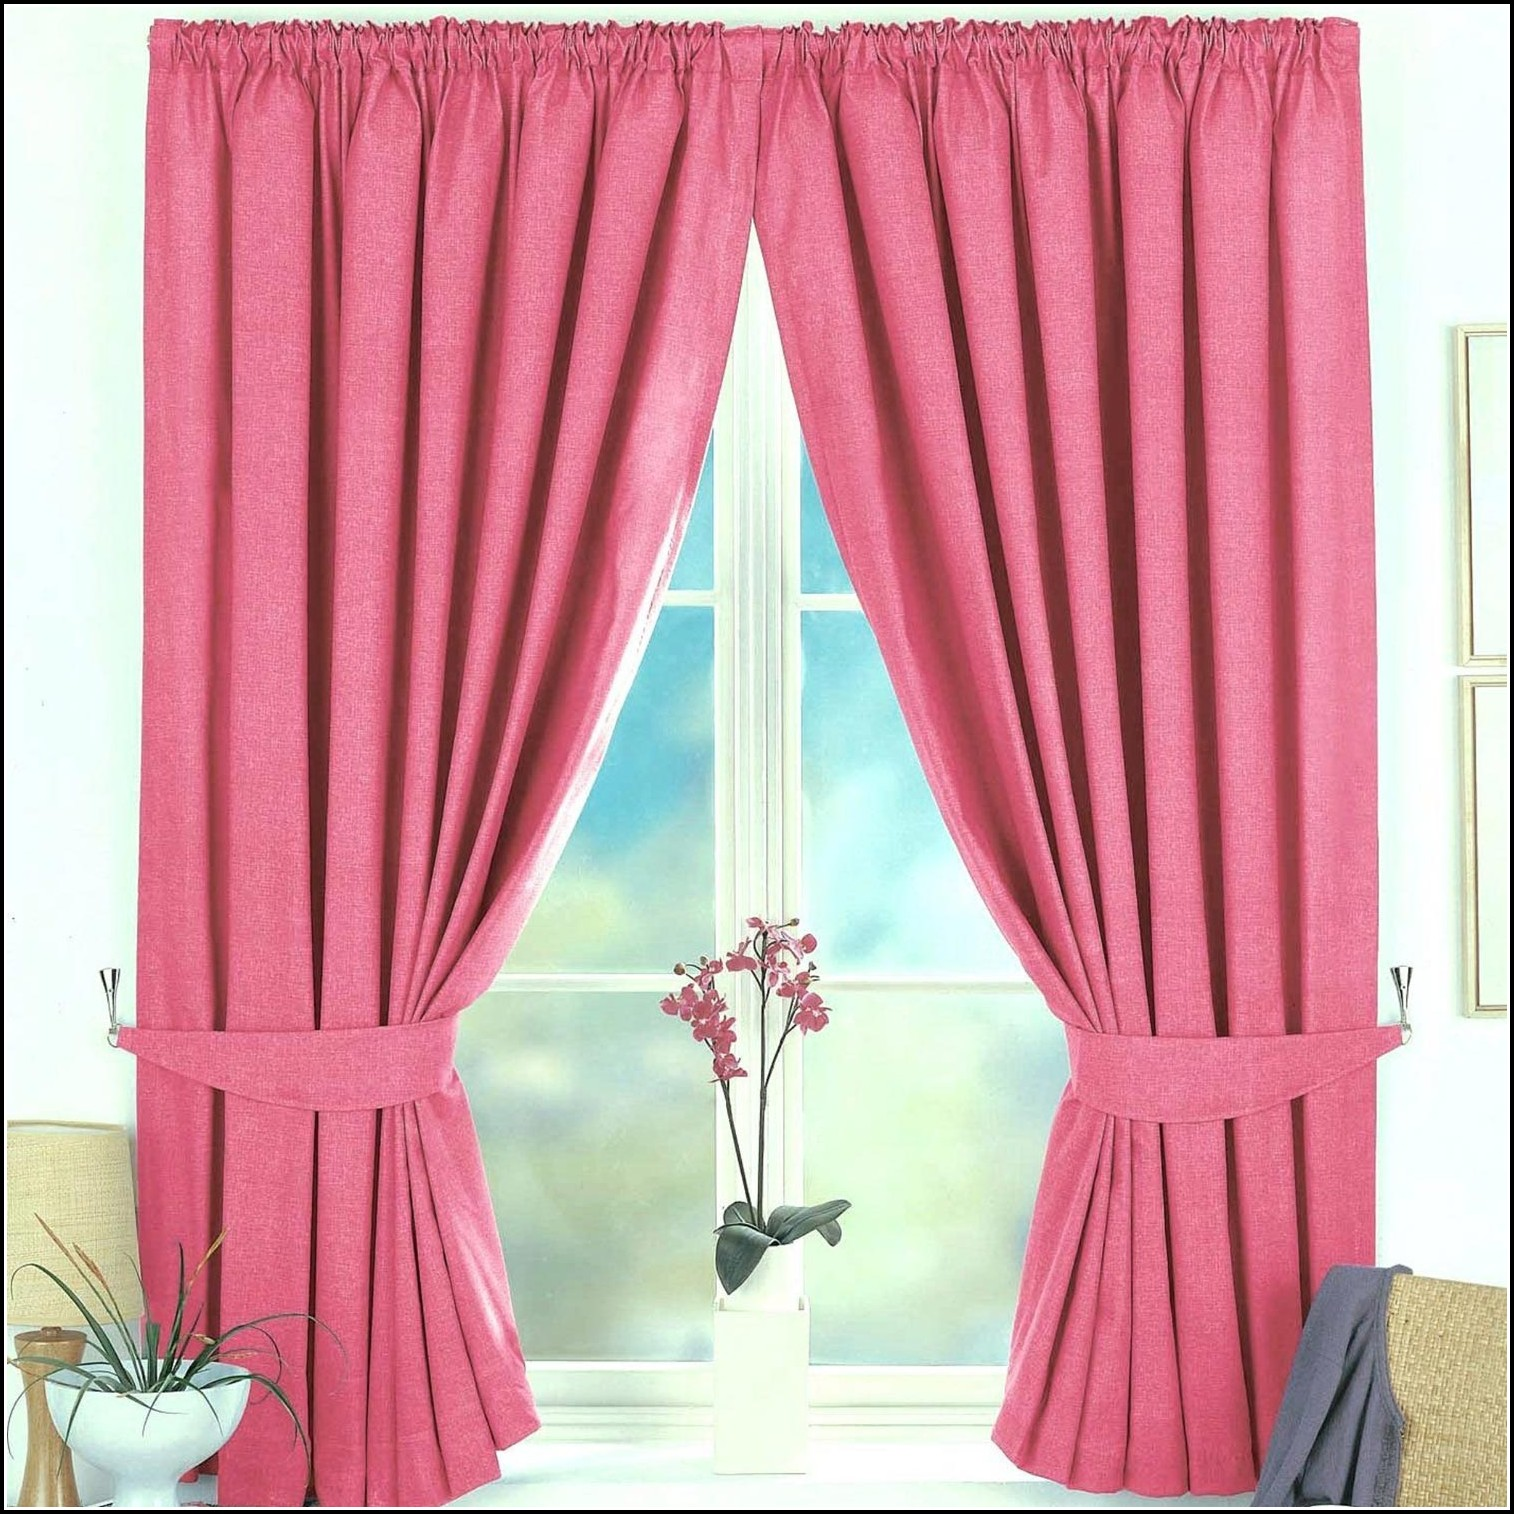 Blackout Fabric For Eyelet Curtains Curtains Home Design Ideas Qbn1ly6p4m30398